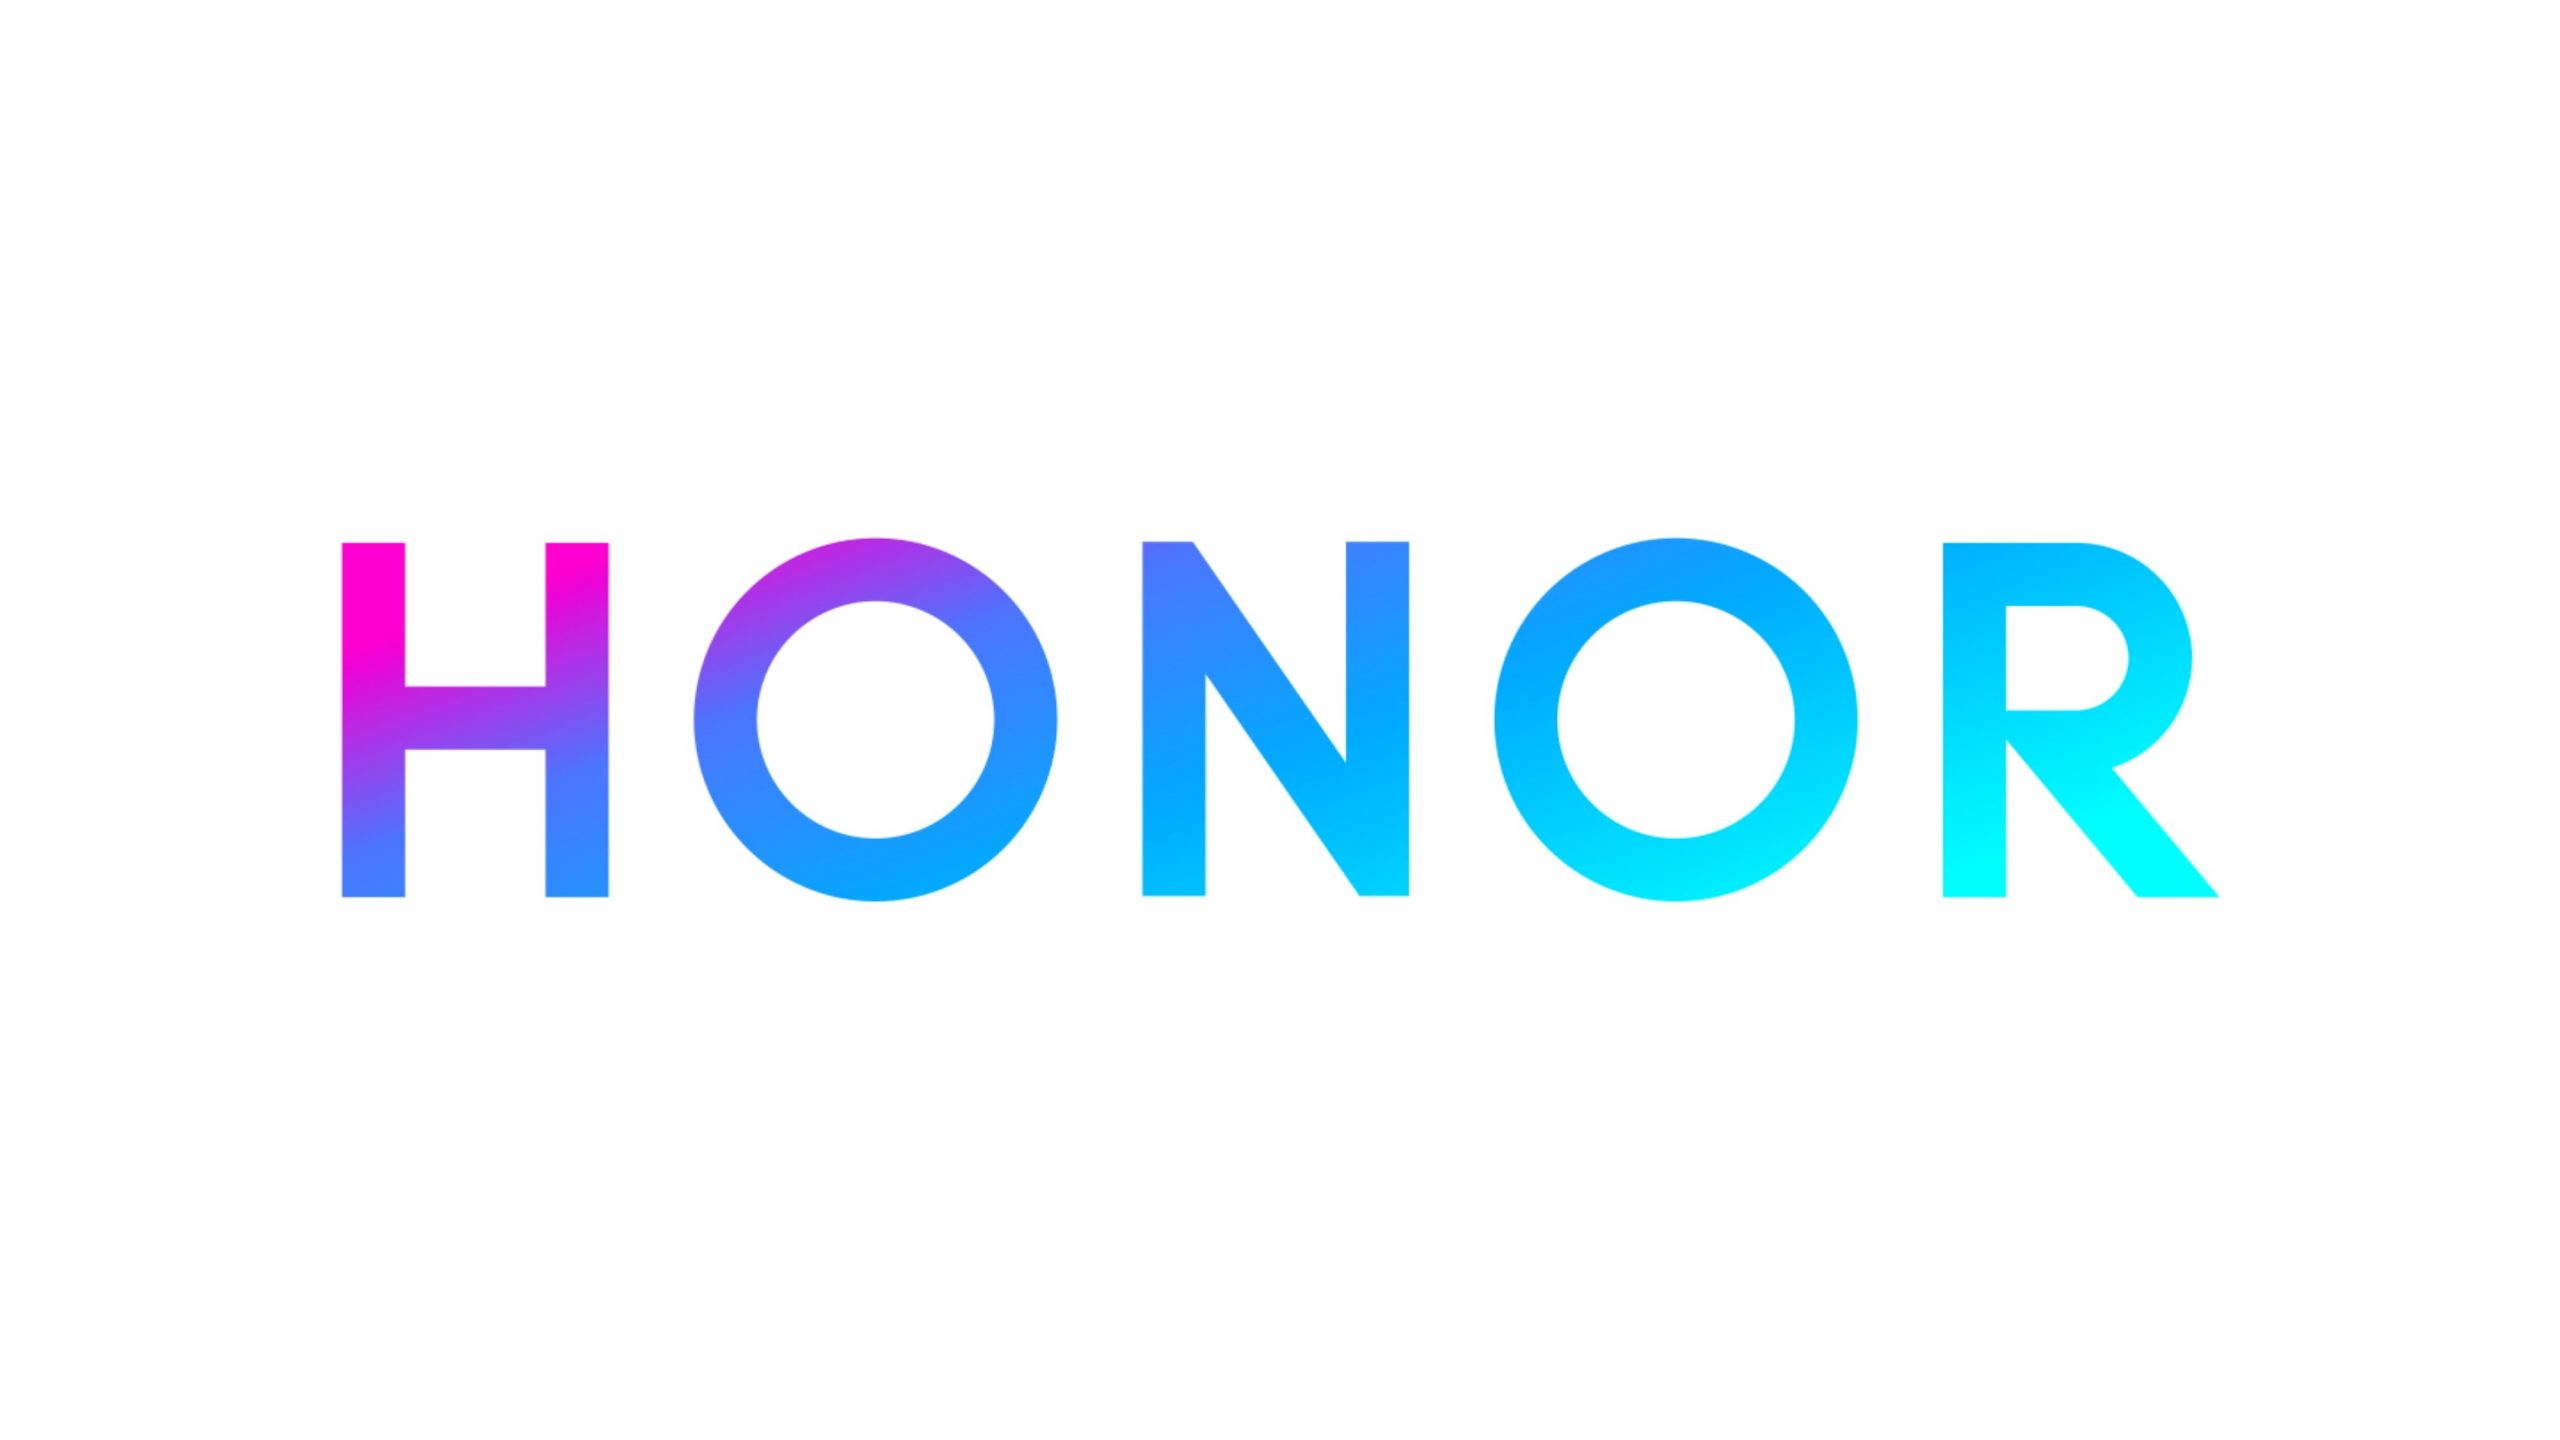 HONOR CHL certified by FCC, Could debut with Magic UI 5.0